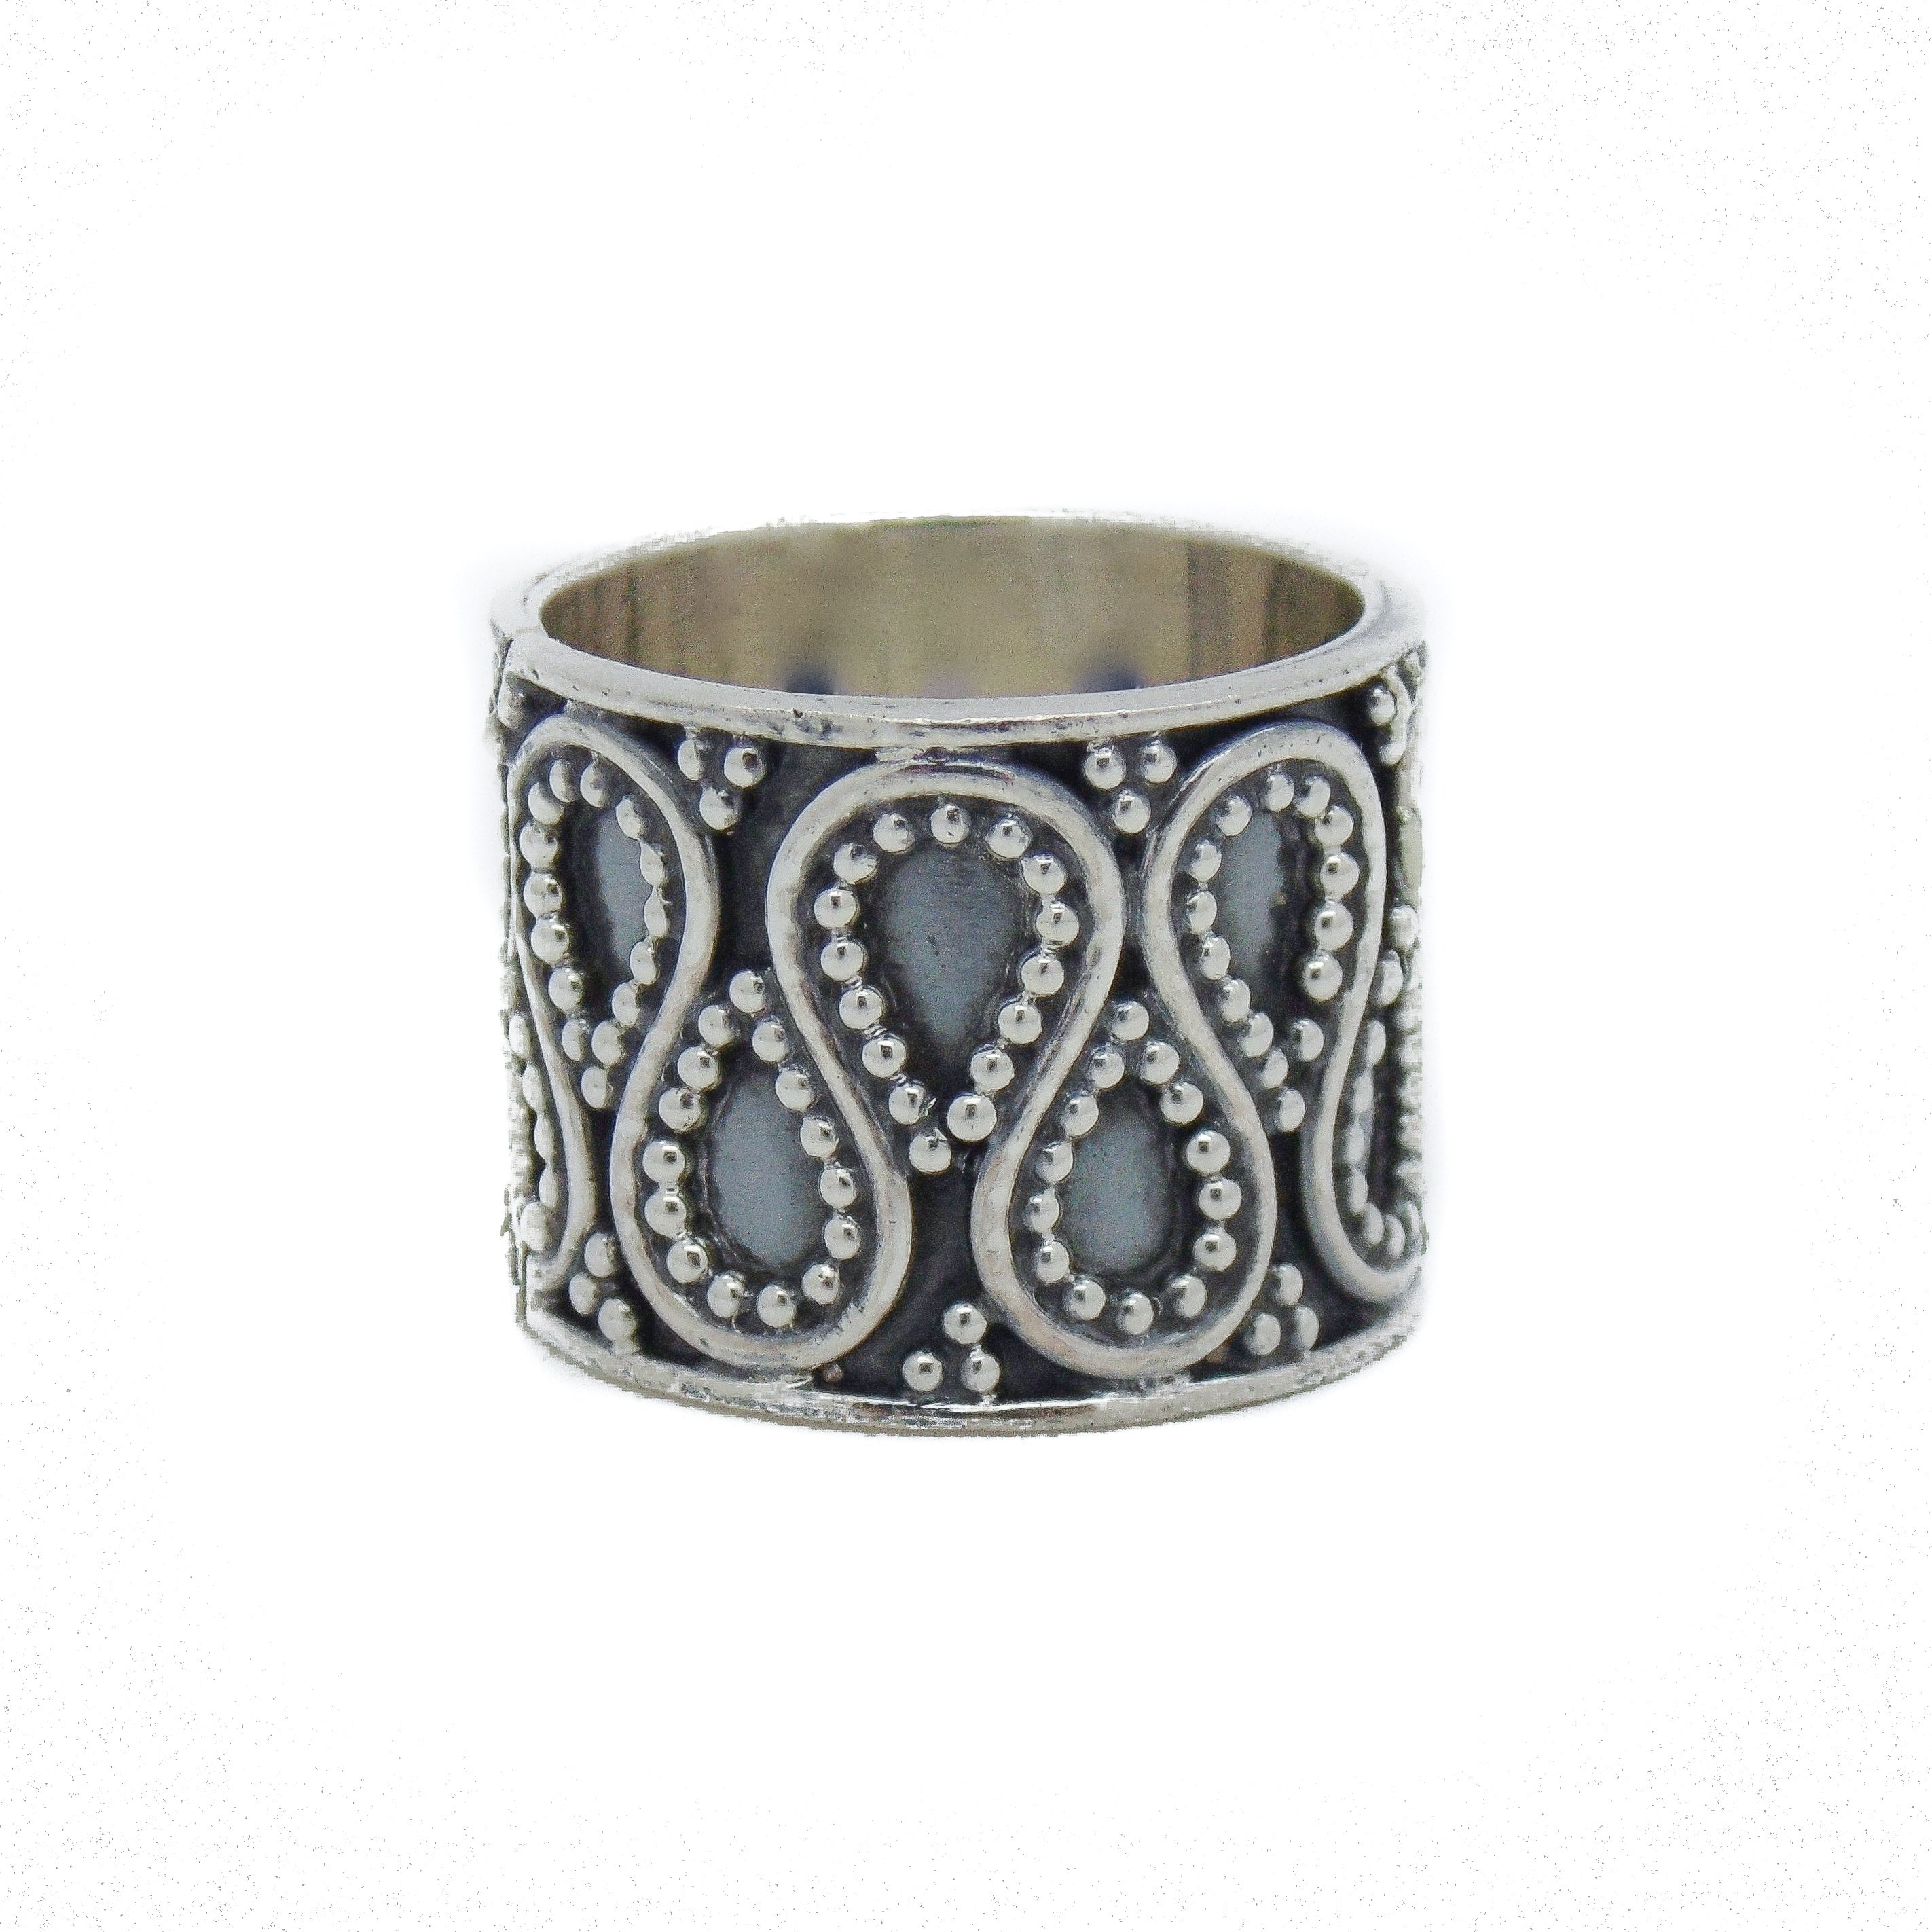 empty casket jewellery sterling silver chunky beaded